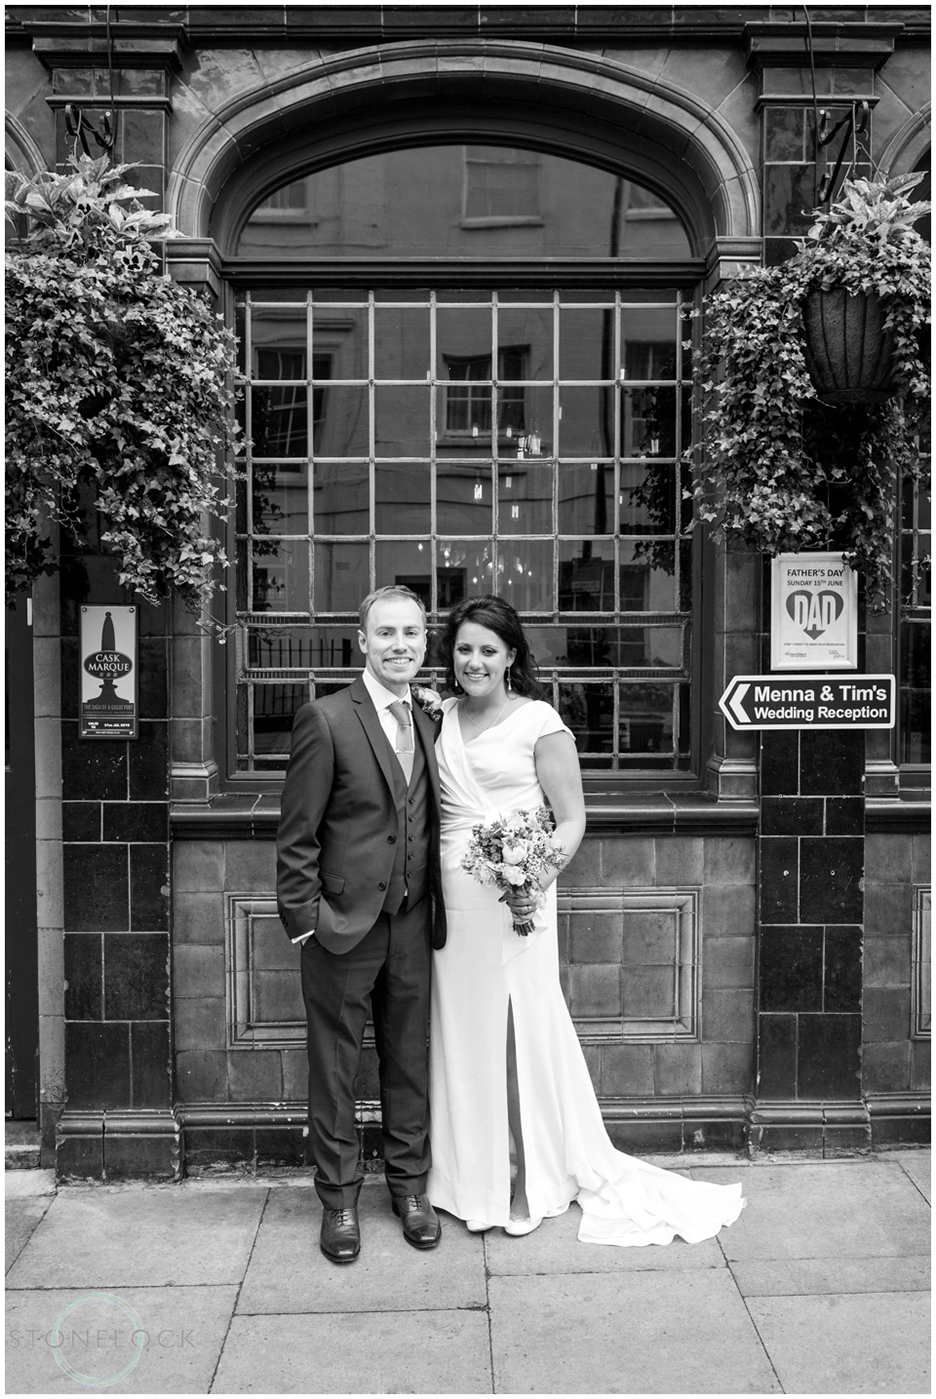 The bride and groom at the Prince Albert Pub in Camden, North London